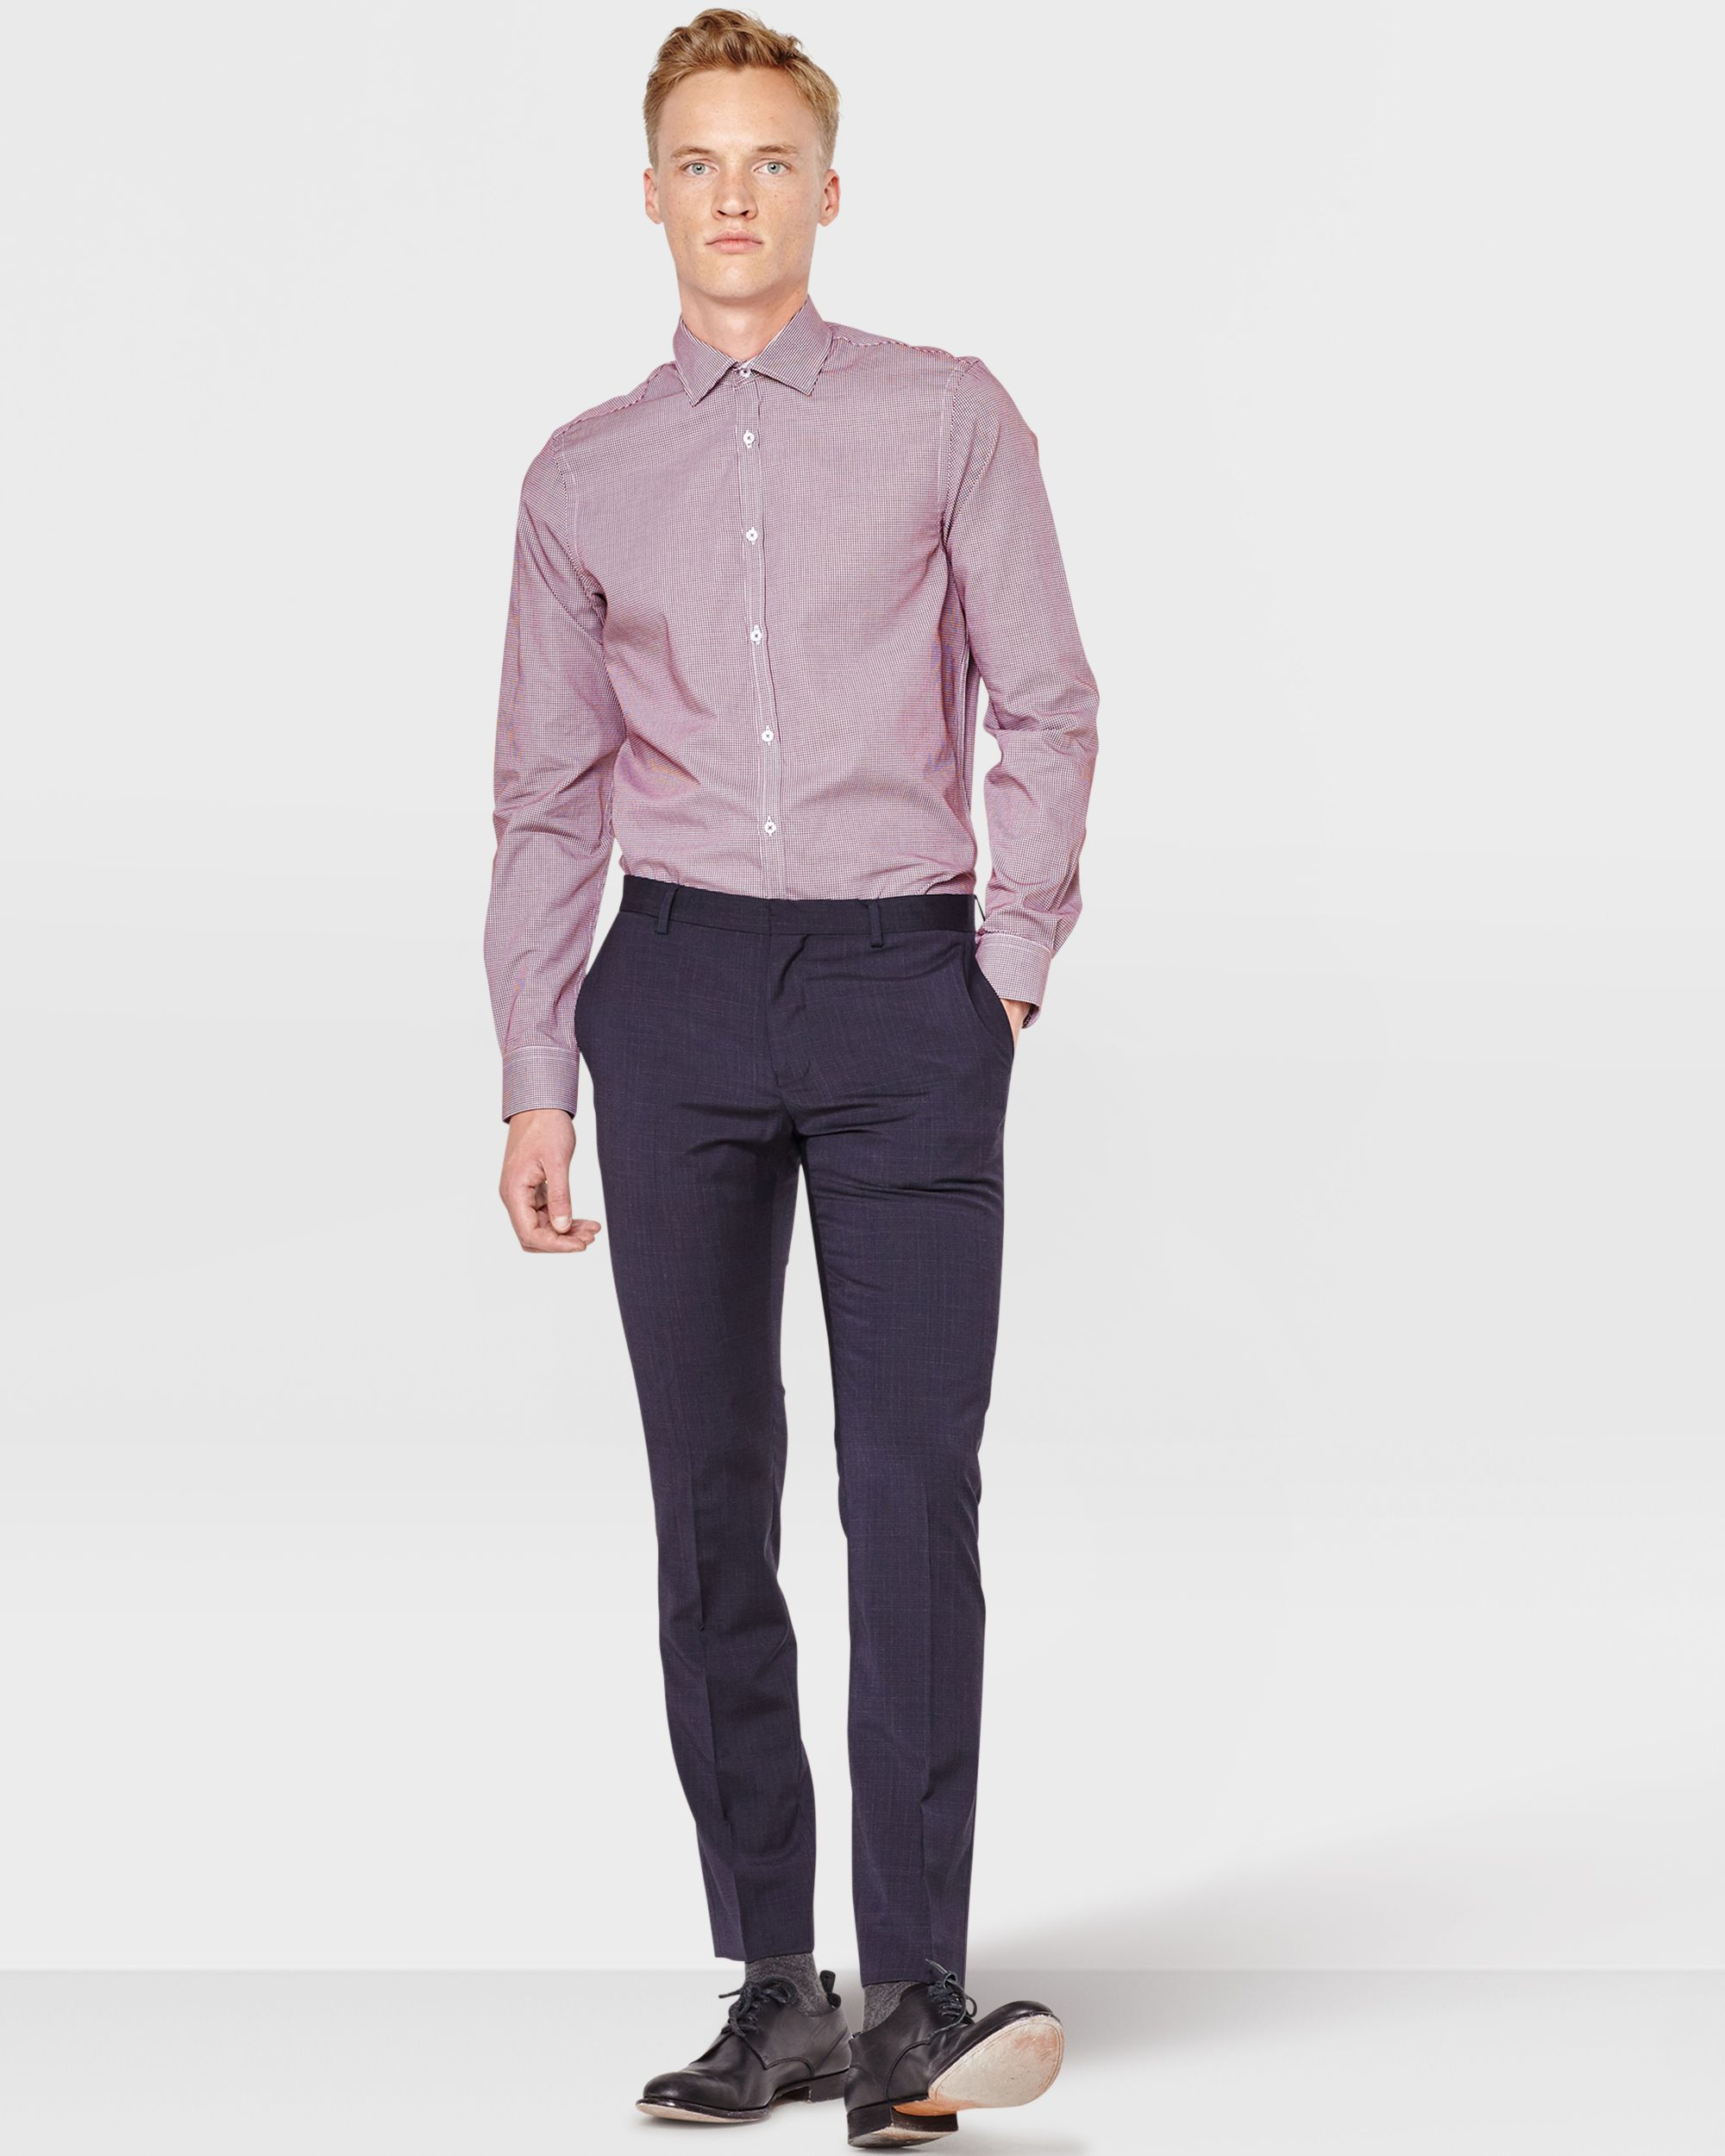 Heren Slim Fit Overhemd.Heren Slim Fit Overhemd Keating Trousers Suits